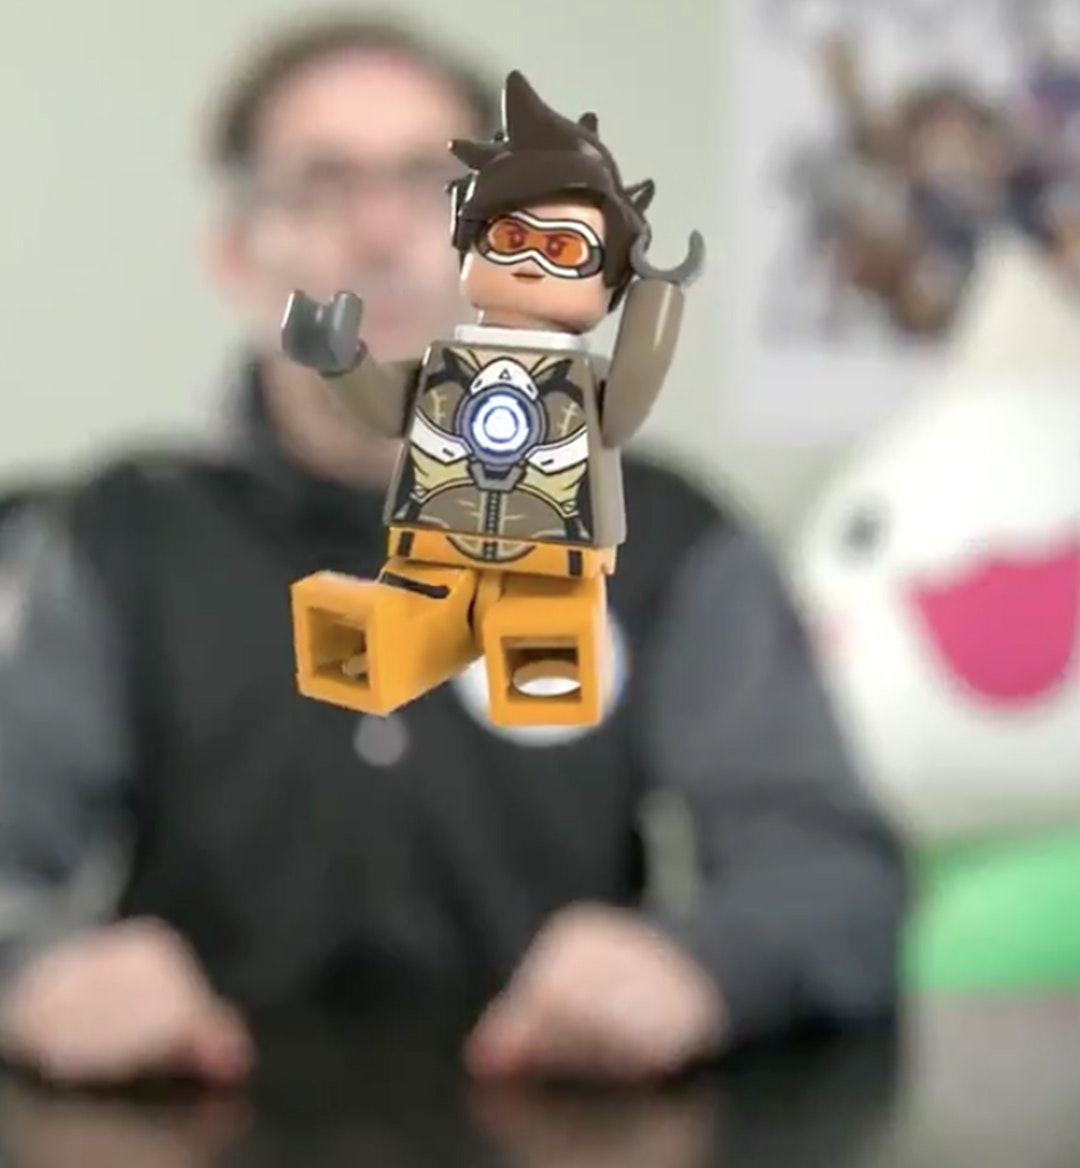 overwatch lego mobile hero